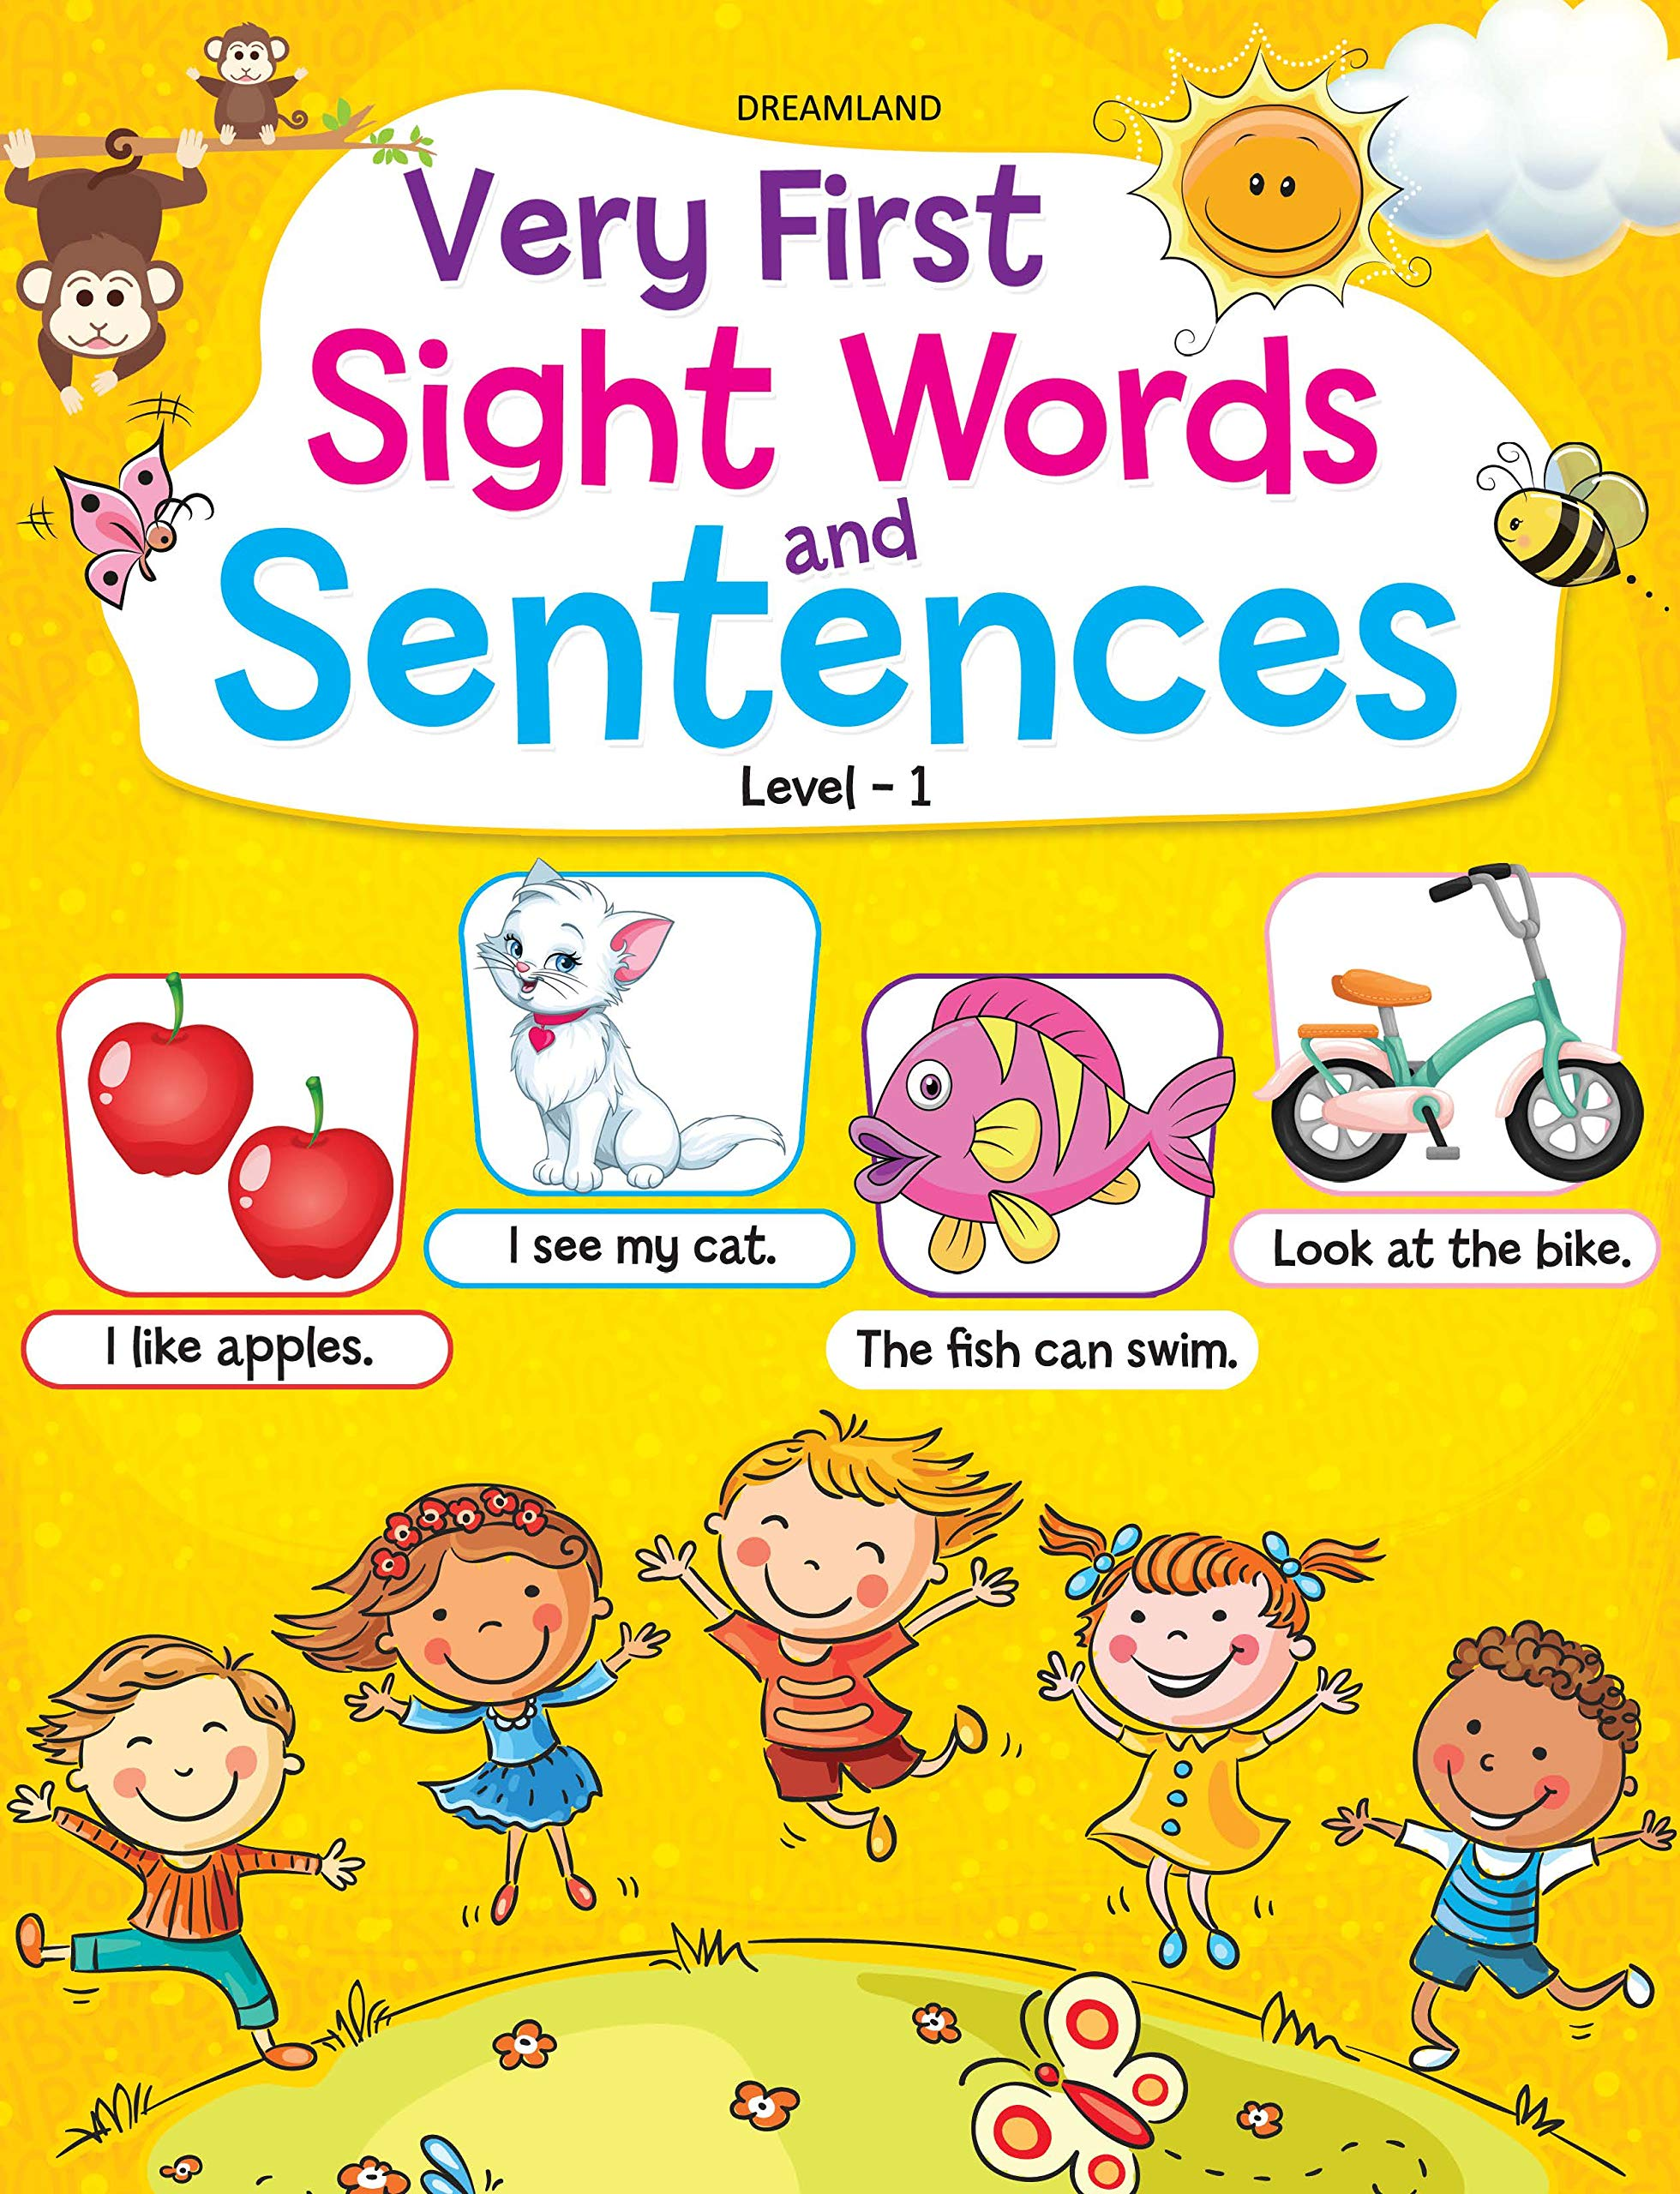 Very First Sight Words Sentences Level 1